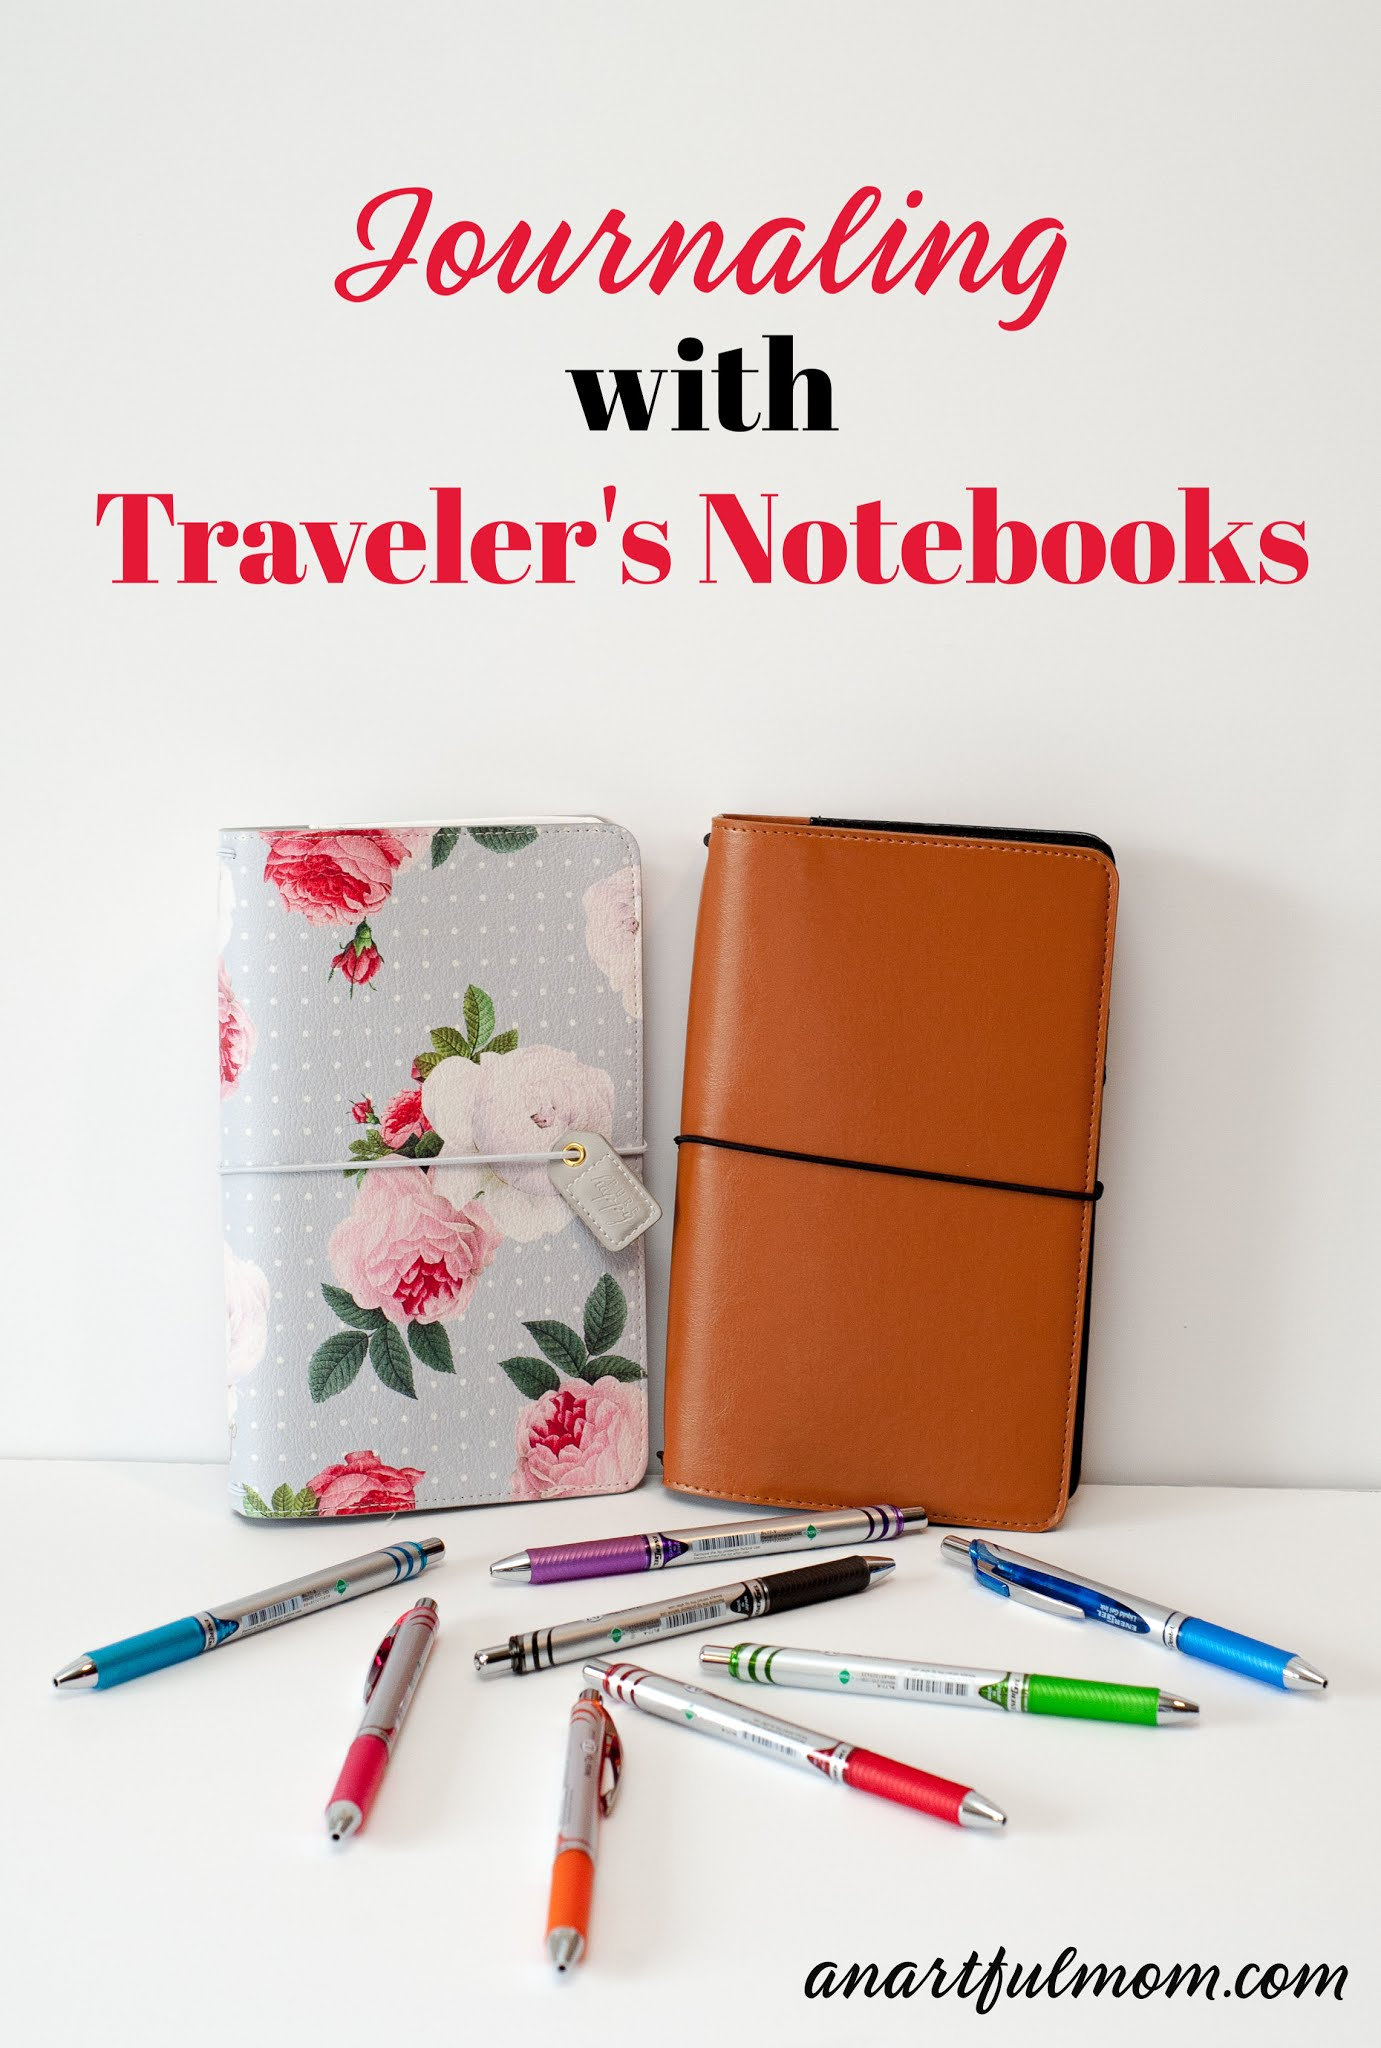 How to use a traveler's notebook